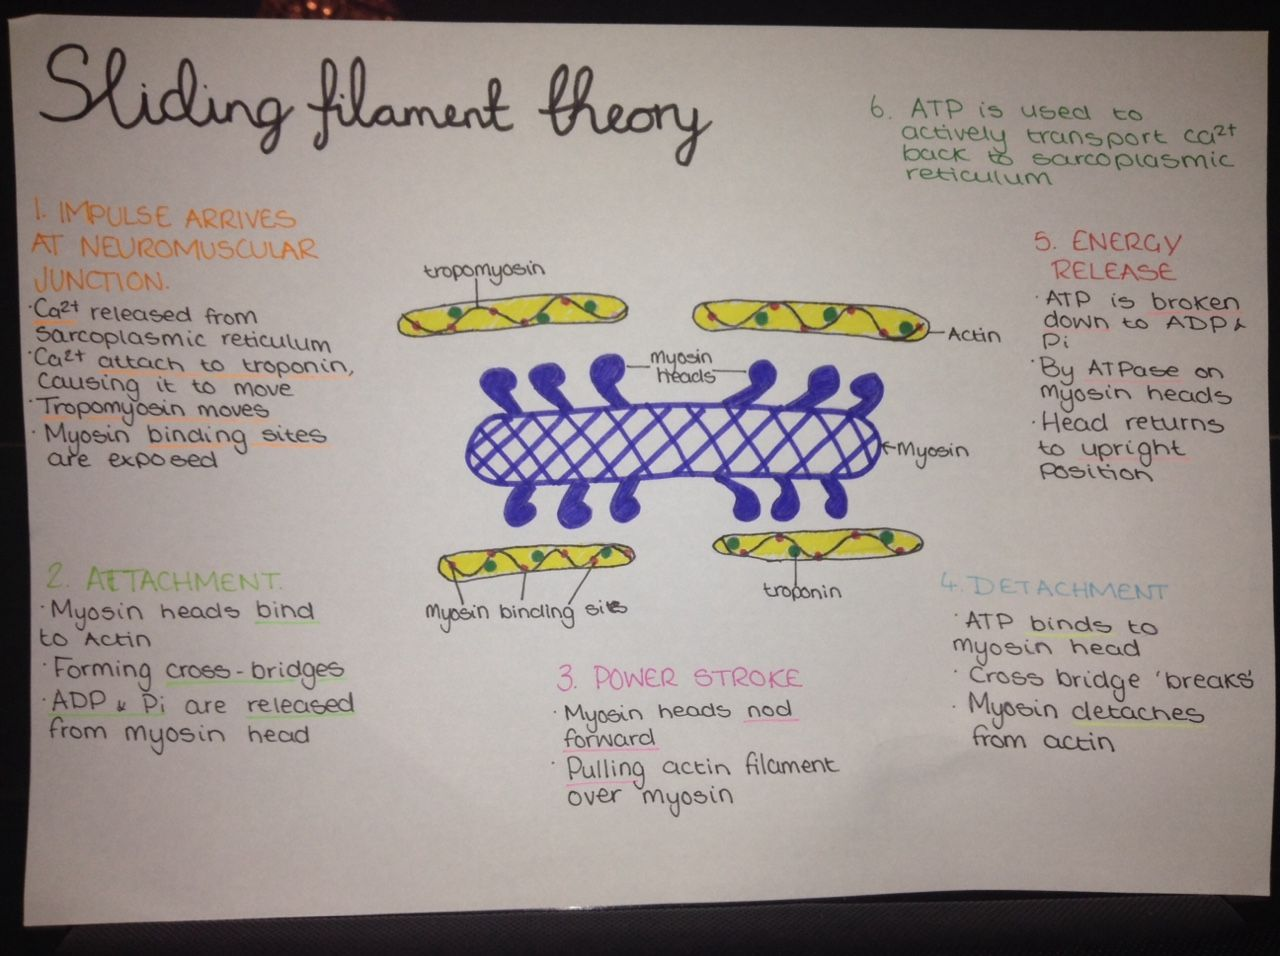 Thefatstudent 9 32pm Sliding Filament Theory Of Muscle Contraction Poster To Go On My